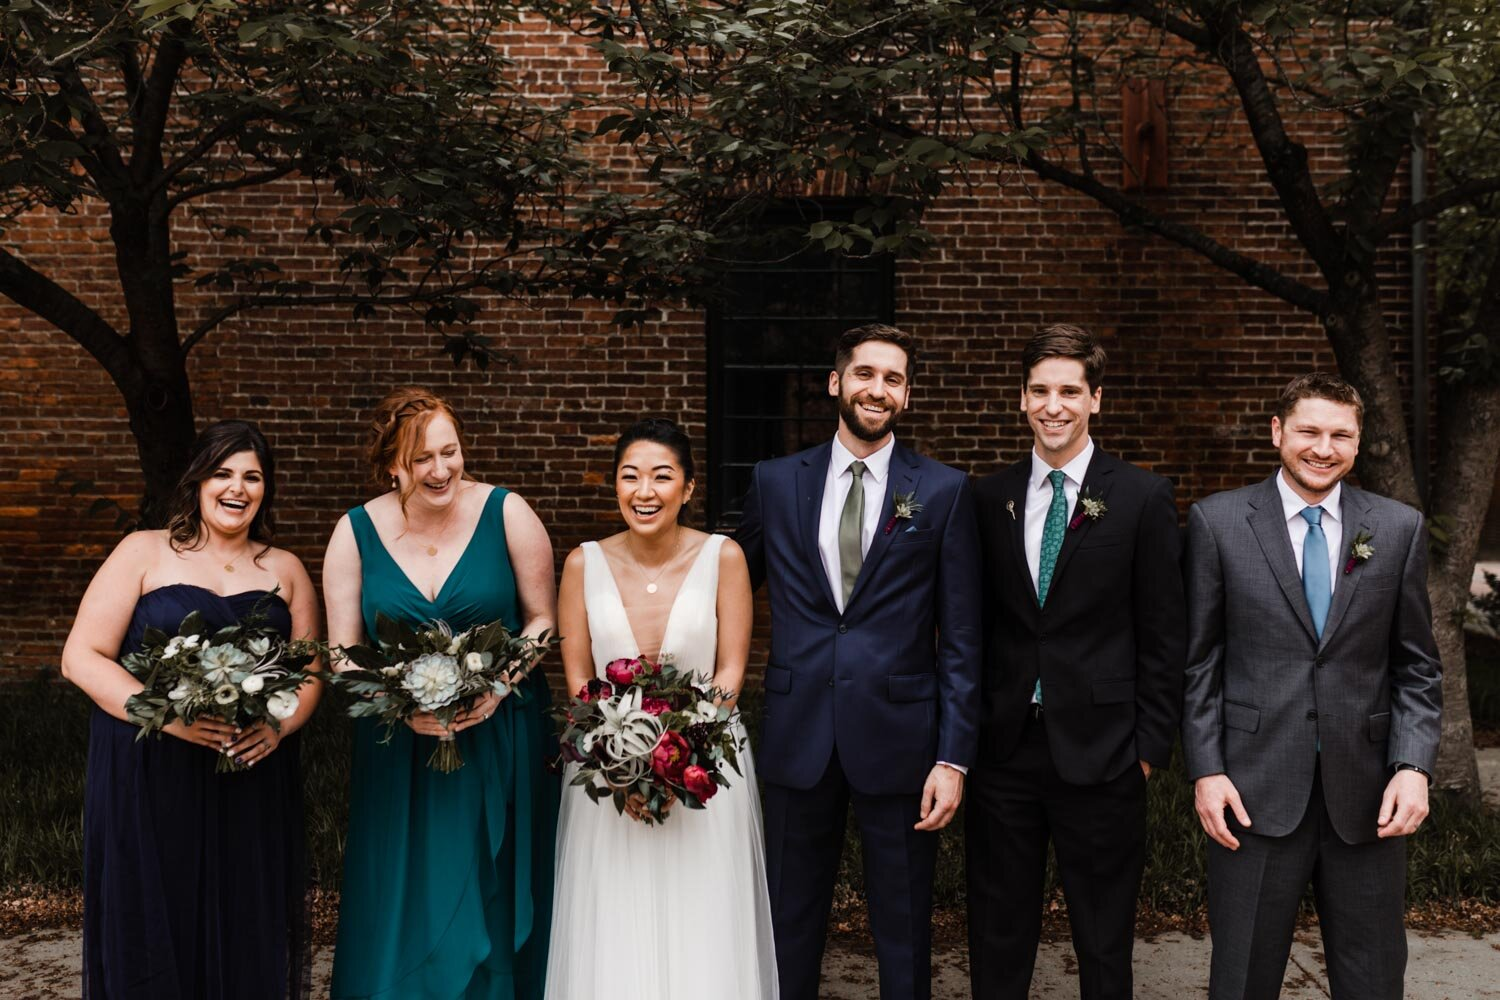 Mt Washington Mill Dye House industrial Baltimore wedding by Barbara O Photography-19.jpg